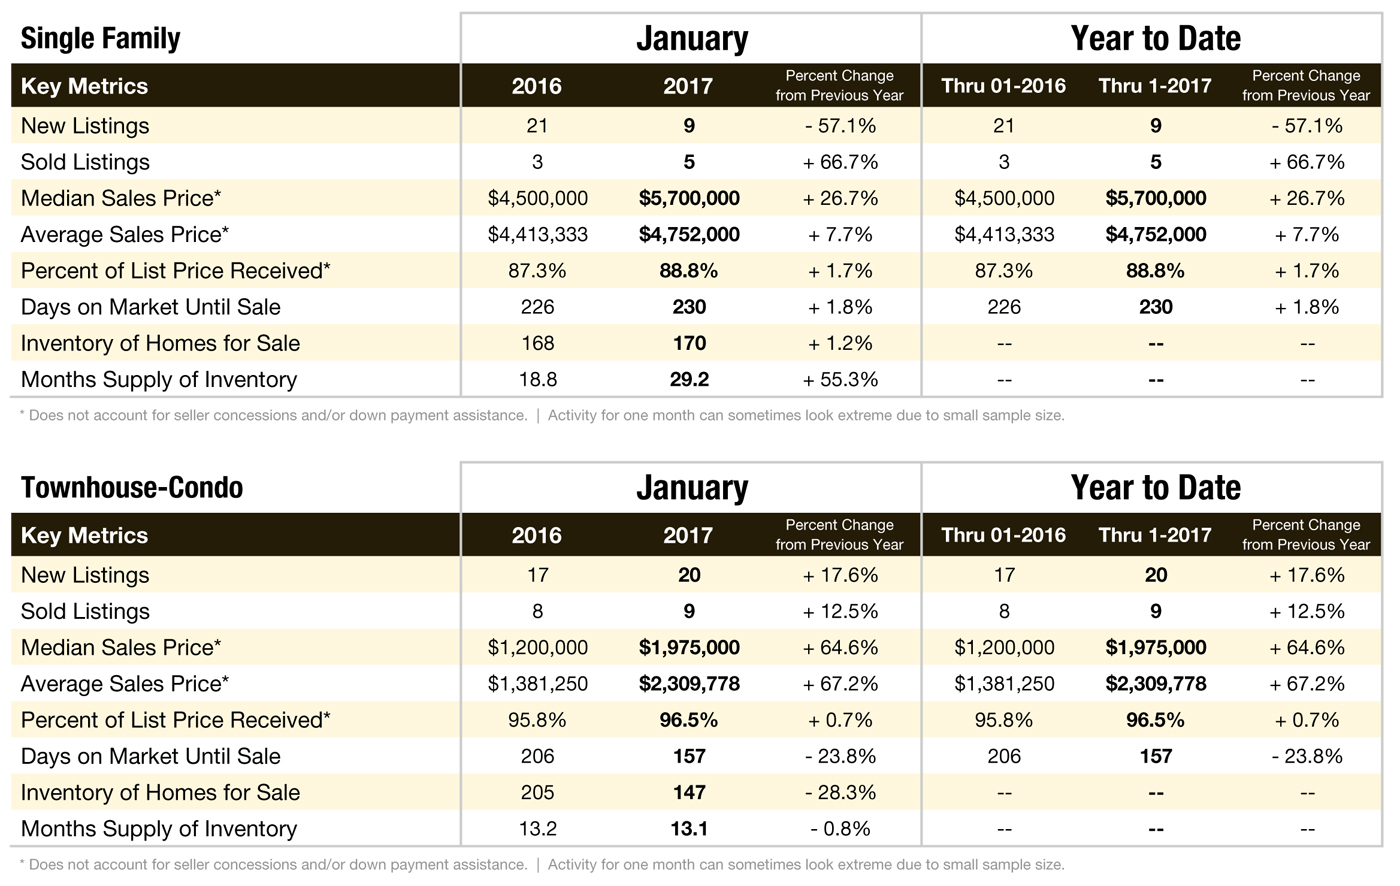 Aspen & Pitkin County Market Data: January 2017